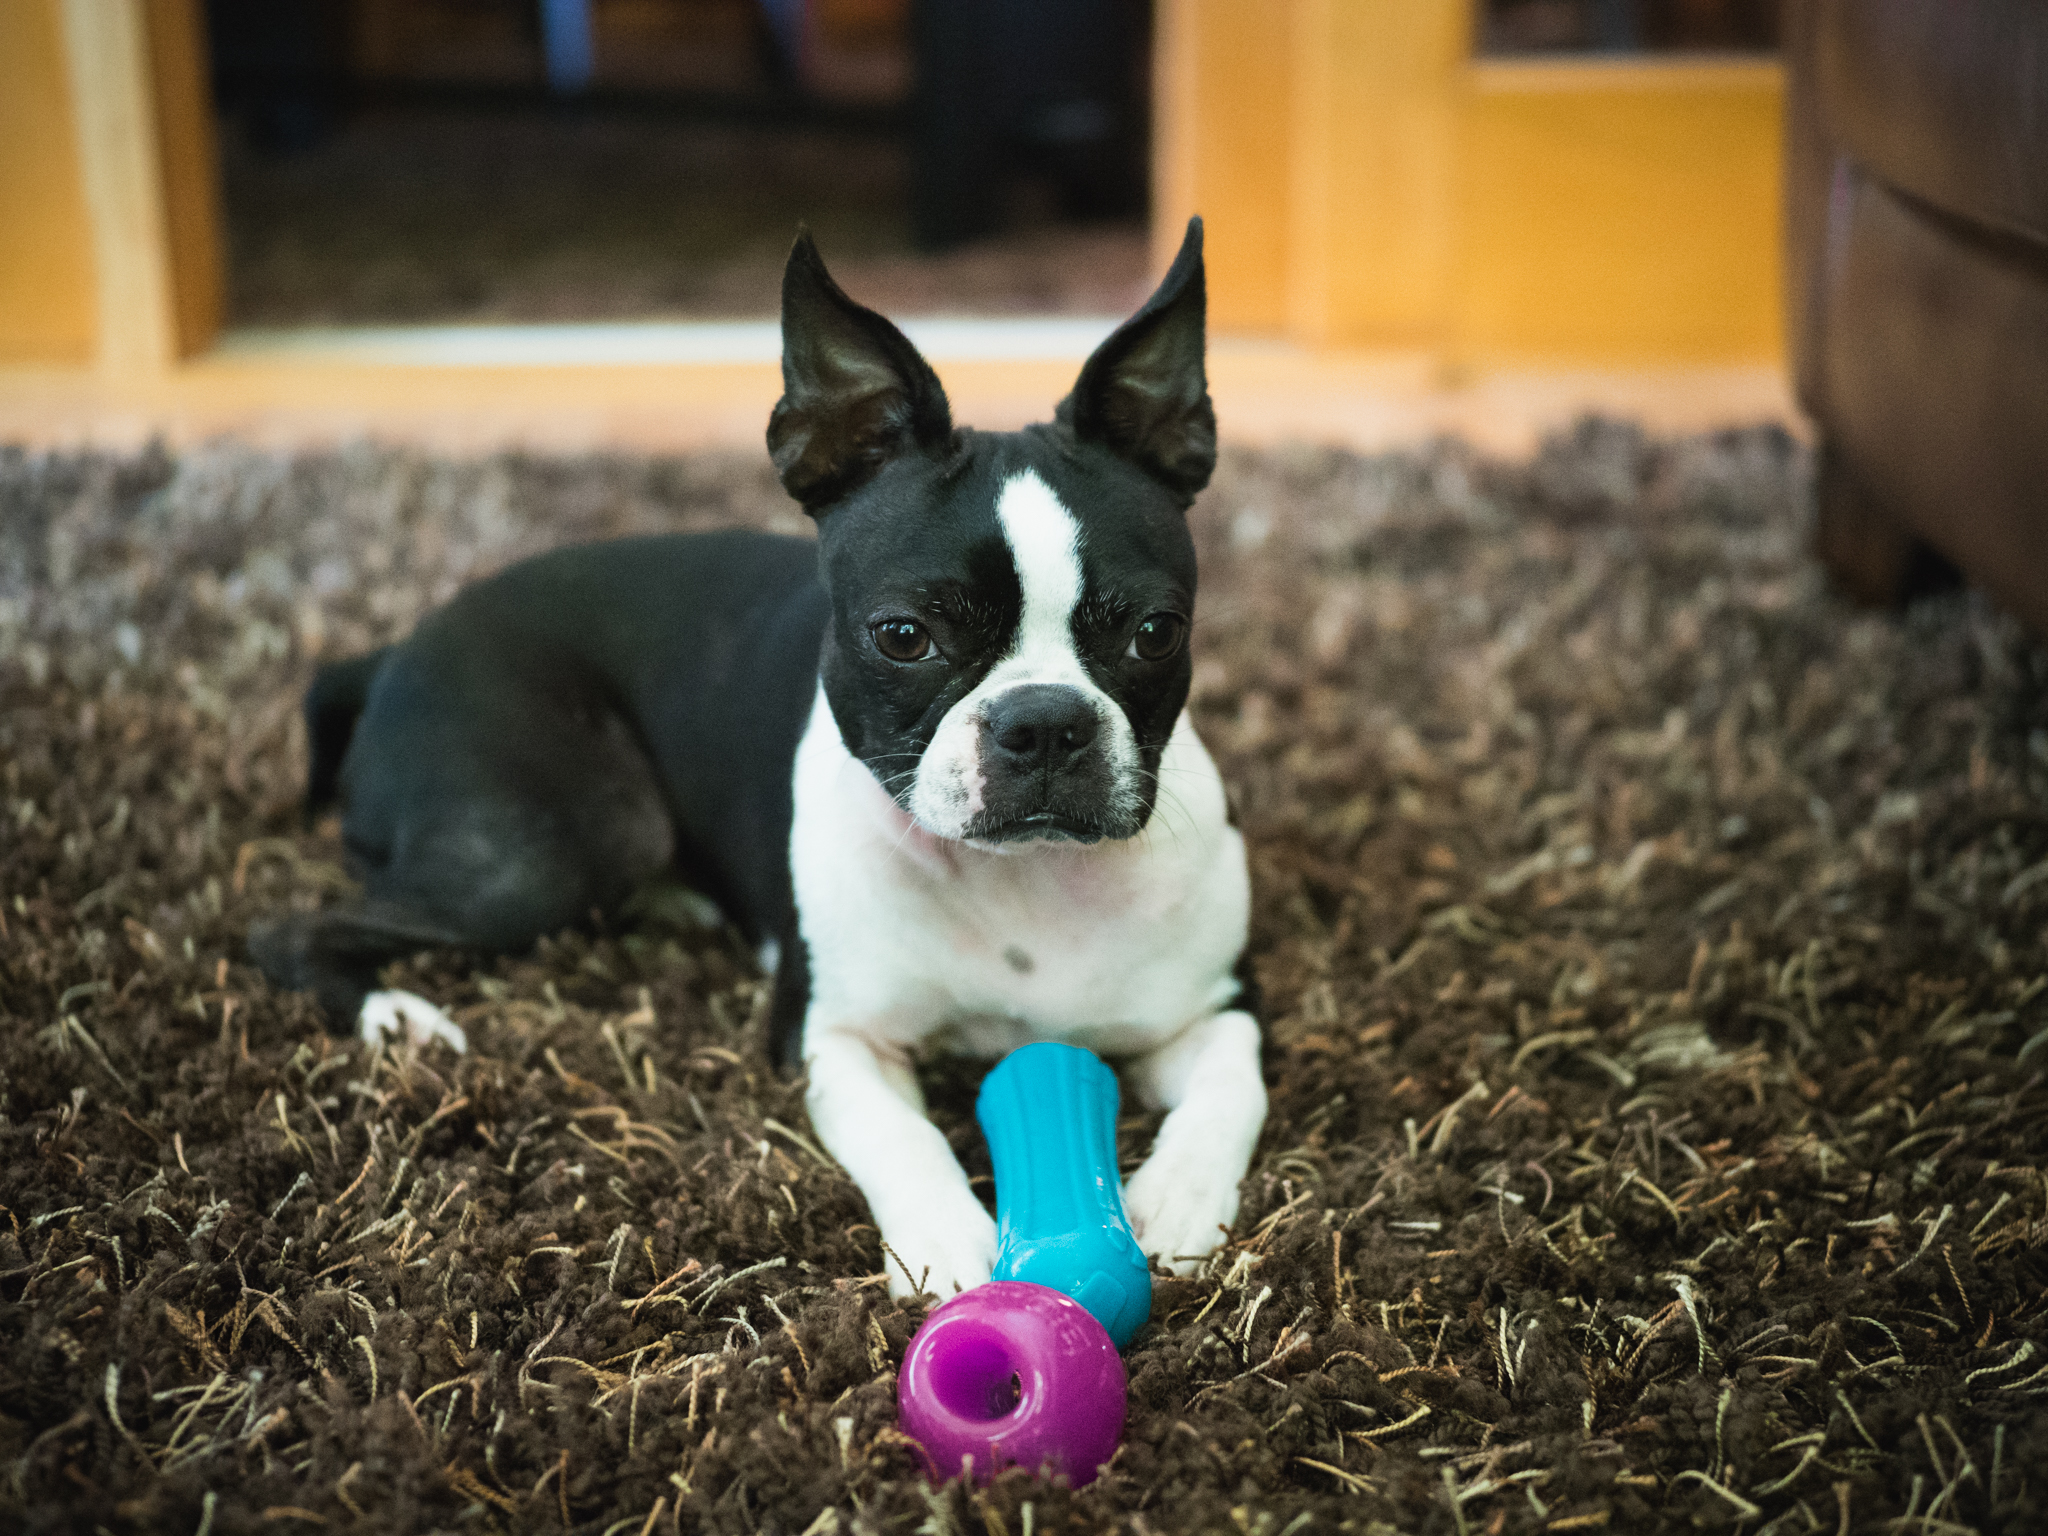 Sneaky Squeaky Stick and Bionic Ball Review